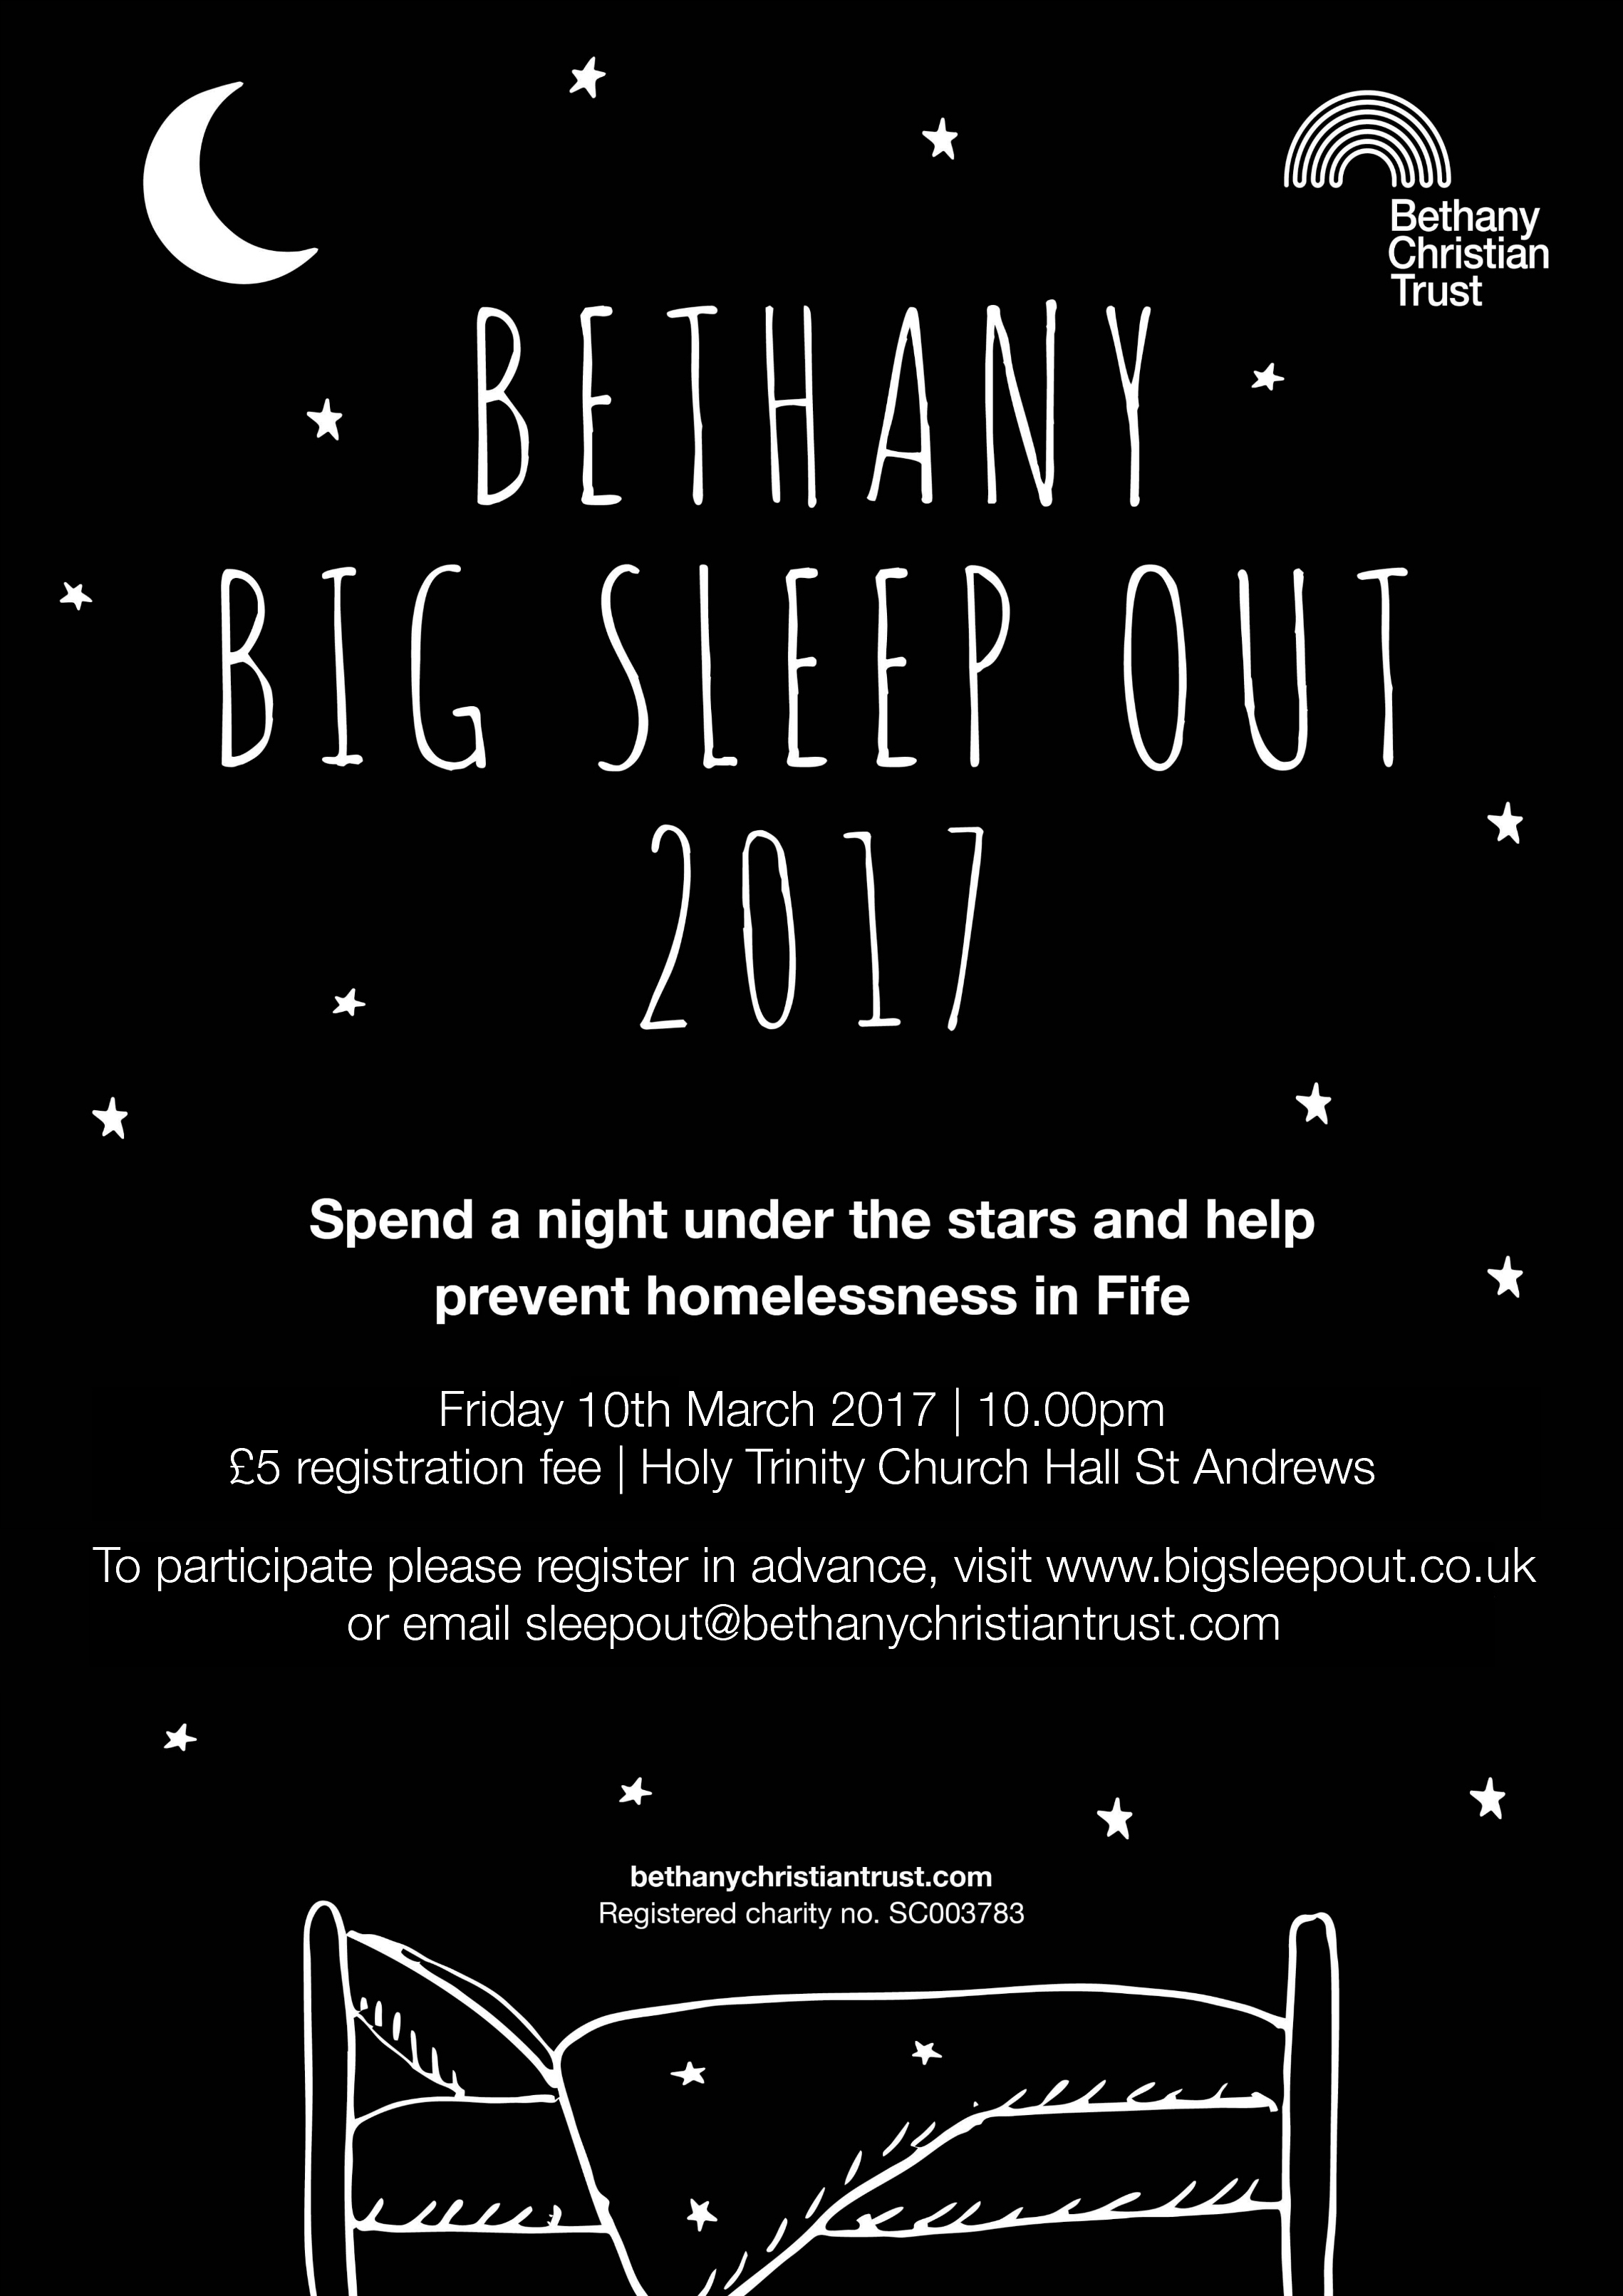 BTY-Big Sleep Out St Andrews v2